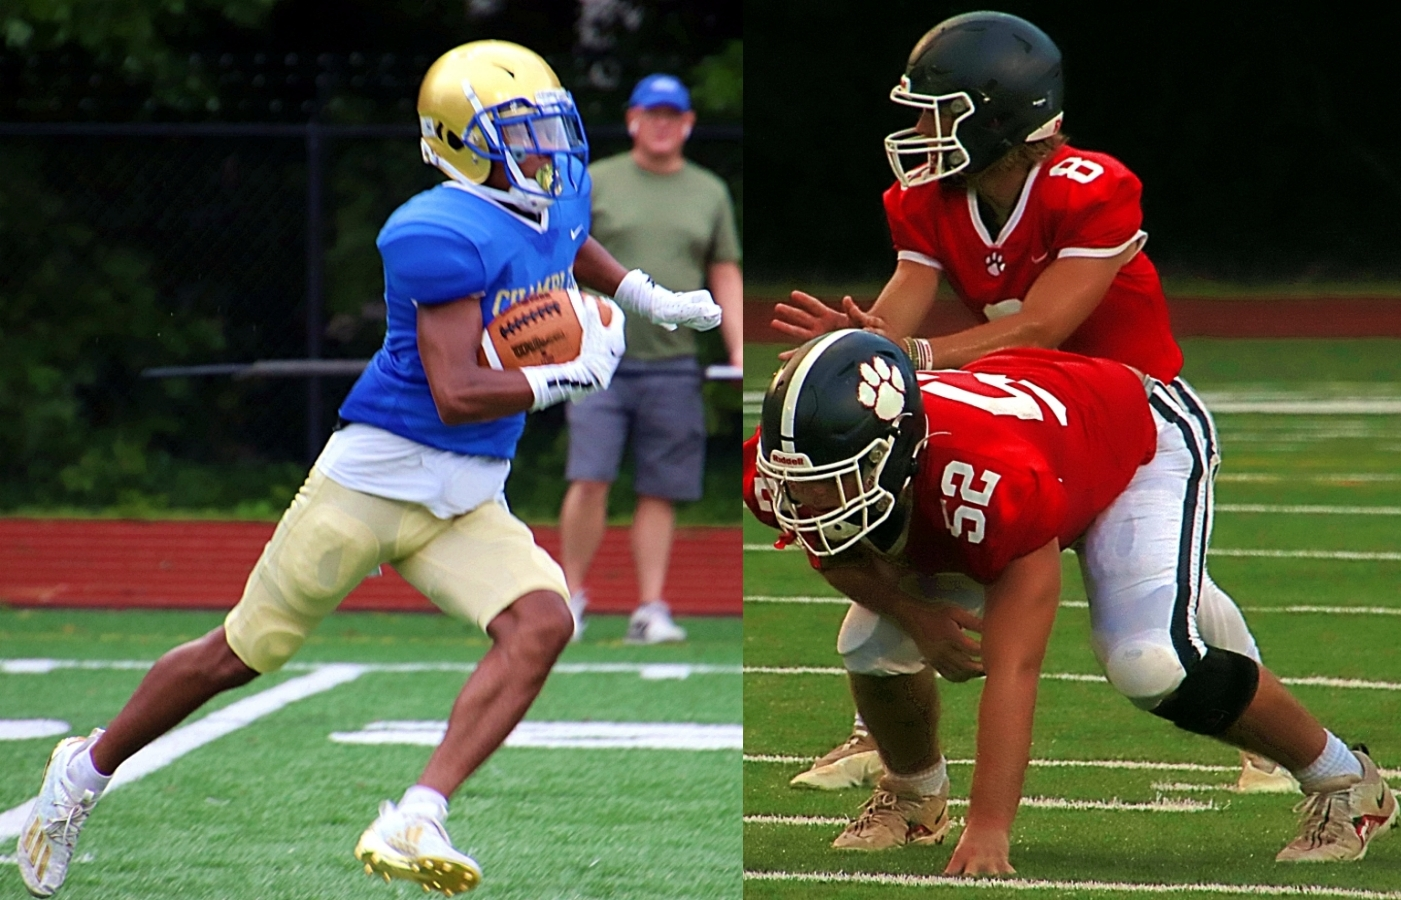 Chamblee's Jameel Avery (left) and the high powered Bulldog offense take on Dunwoody's Porter Ledoyen (right, 8), Conrad Smith (52, right) and their Wildcat teammates in the 24th meeting of the Golden Spike series. (Photos by Mark Brock)